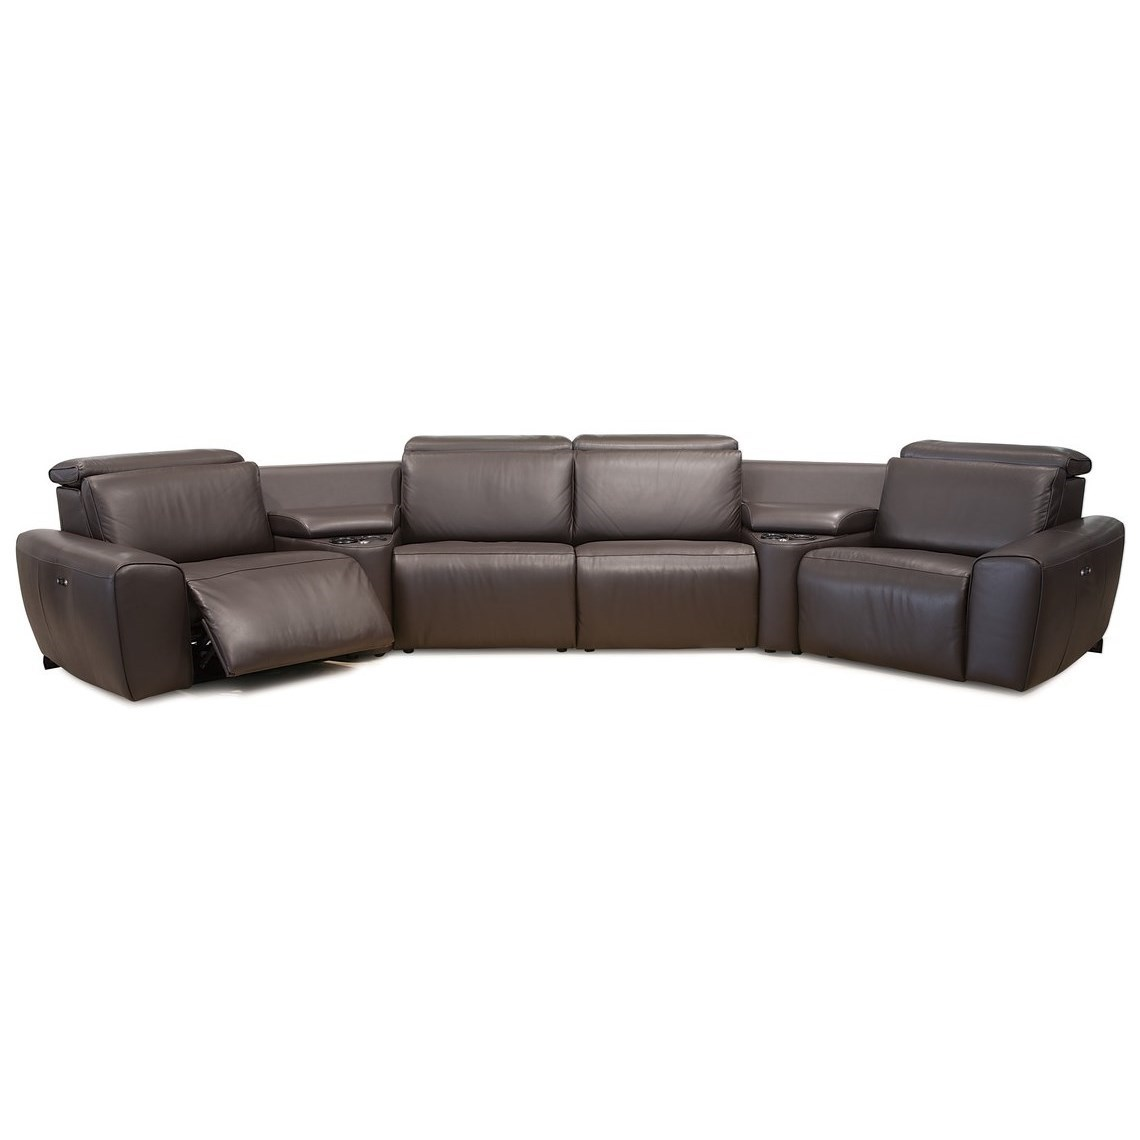 pause modern reclining sectional sofa by palliser standard size in cm beaumont contemporary 4 seat angled